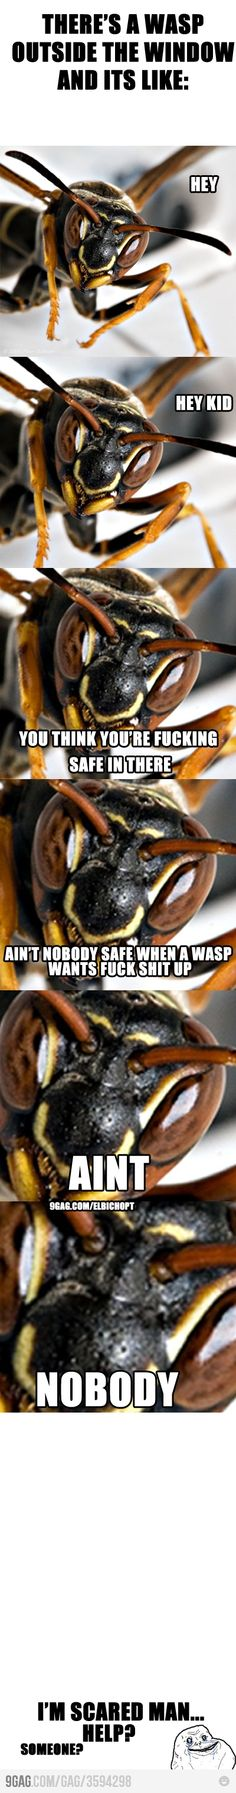 This is exactly what the wasp said to my boyfriend right before he got into his car and caused him to wreck